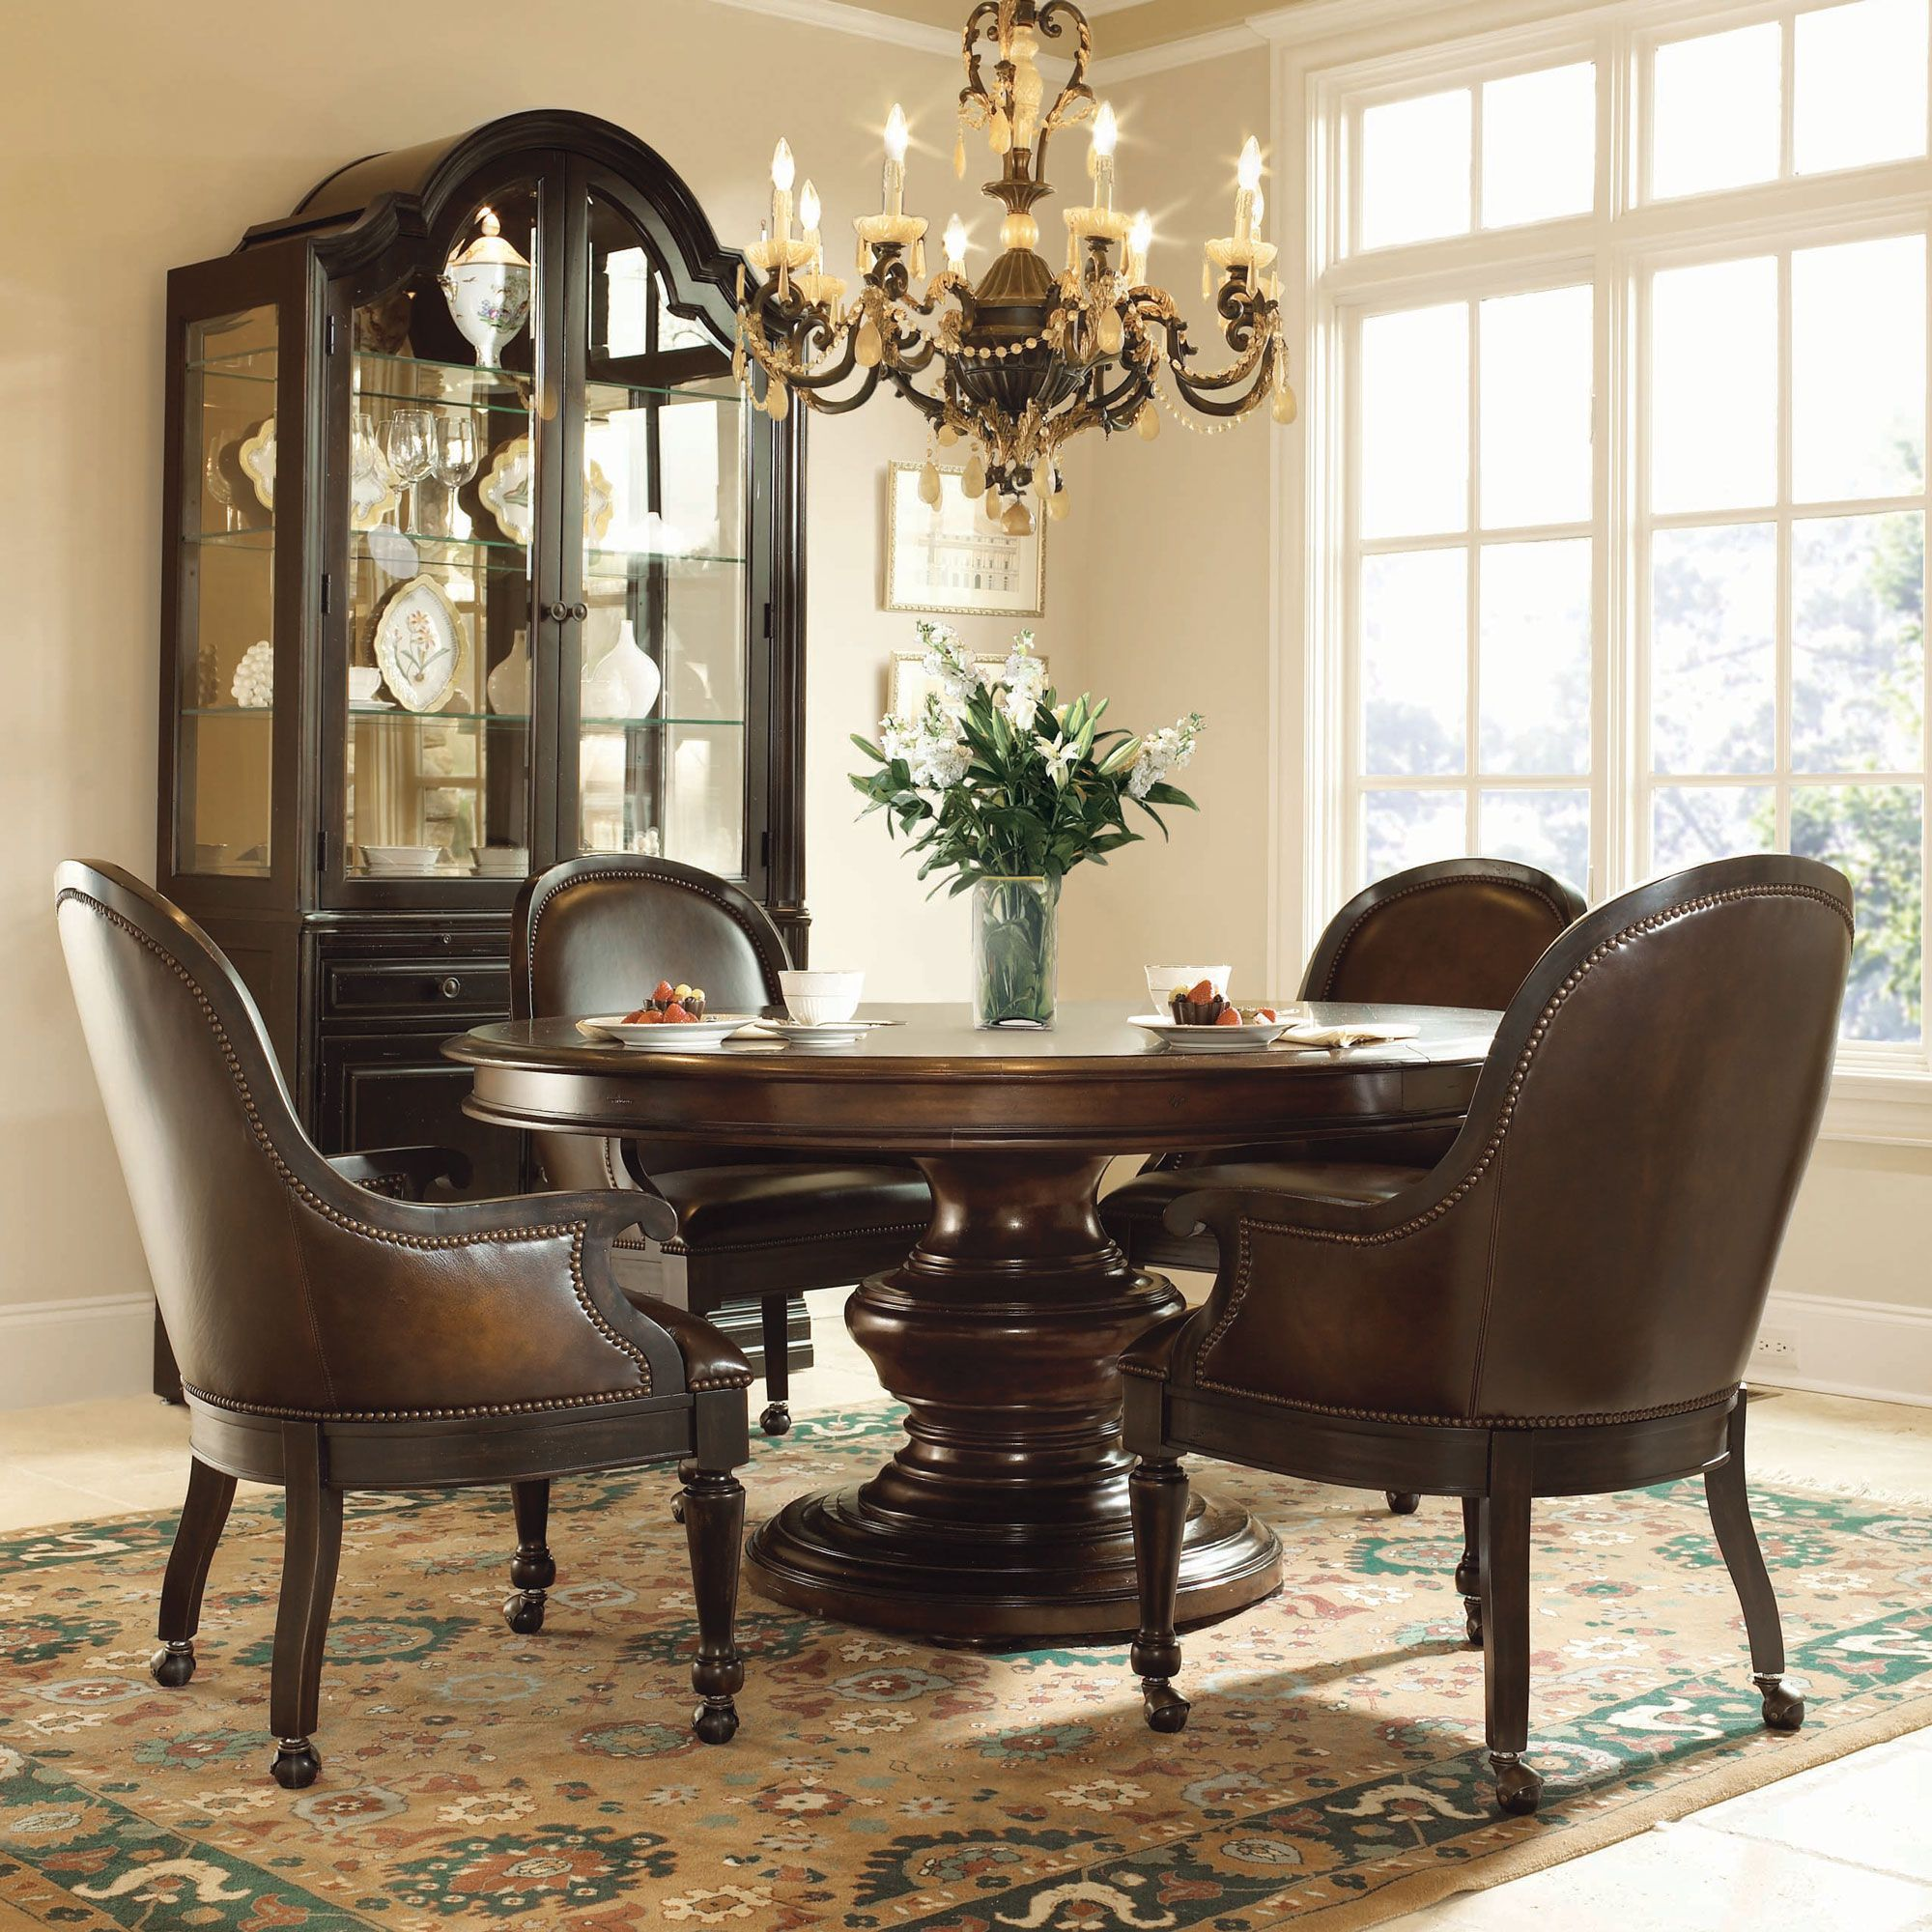 Dining Room Chairs With Wheels: Bernhardt Normandie Manor 5pc Round Dining Room Set With